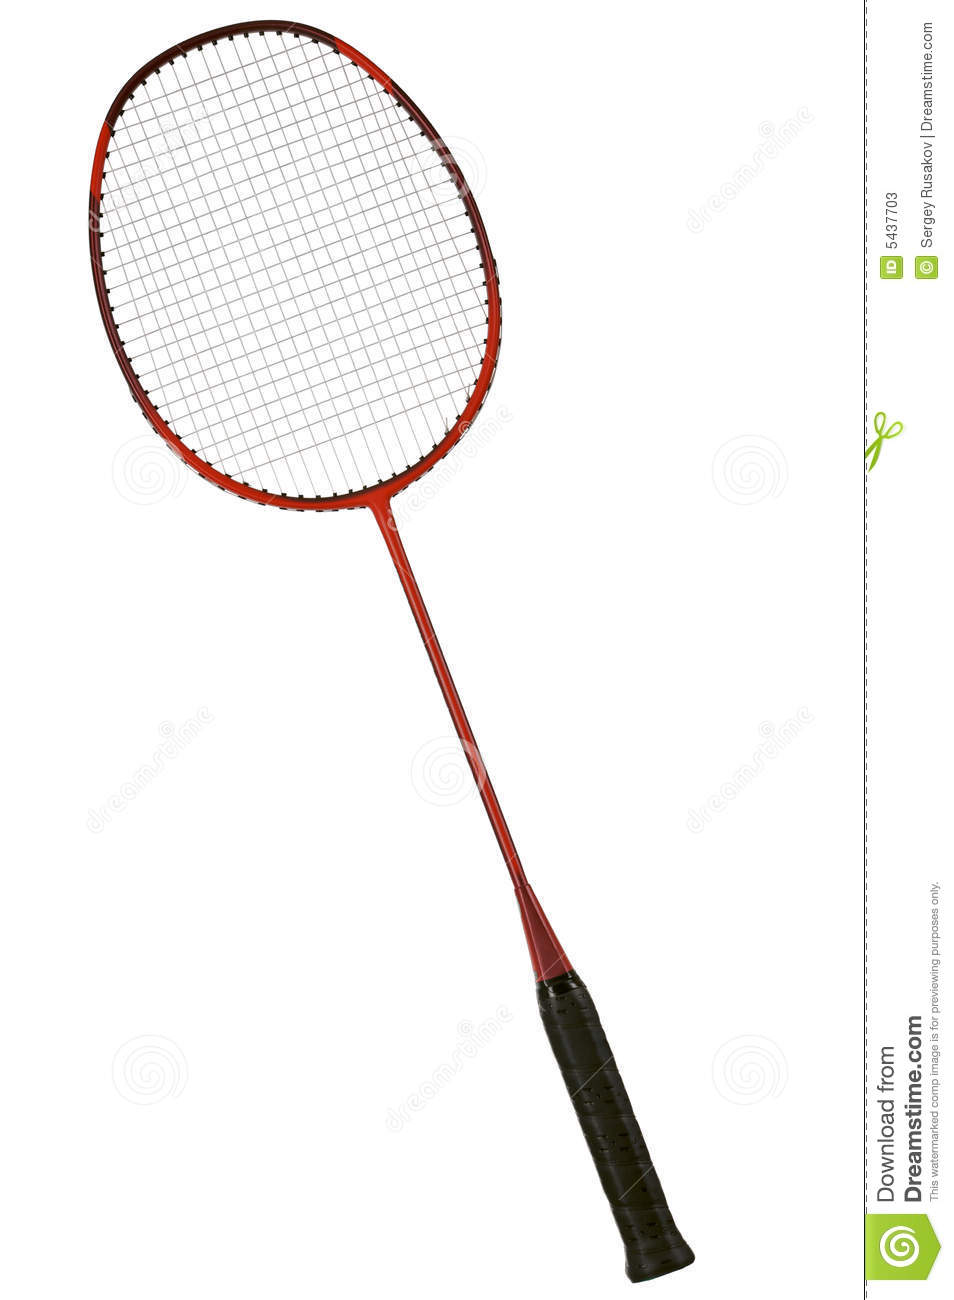 Stock image of space. Racket clipart badminton net png download